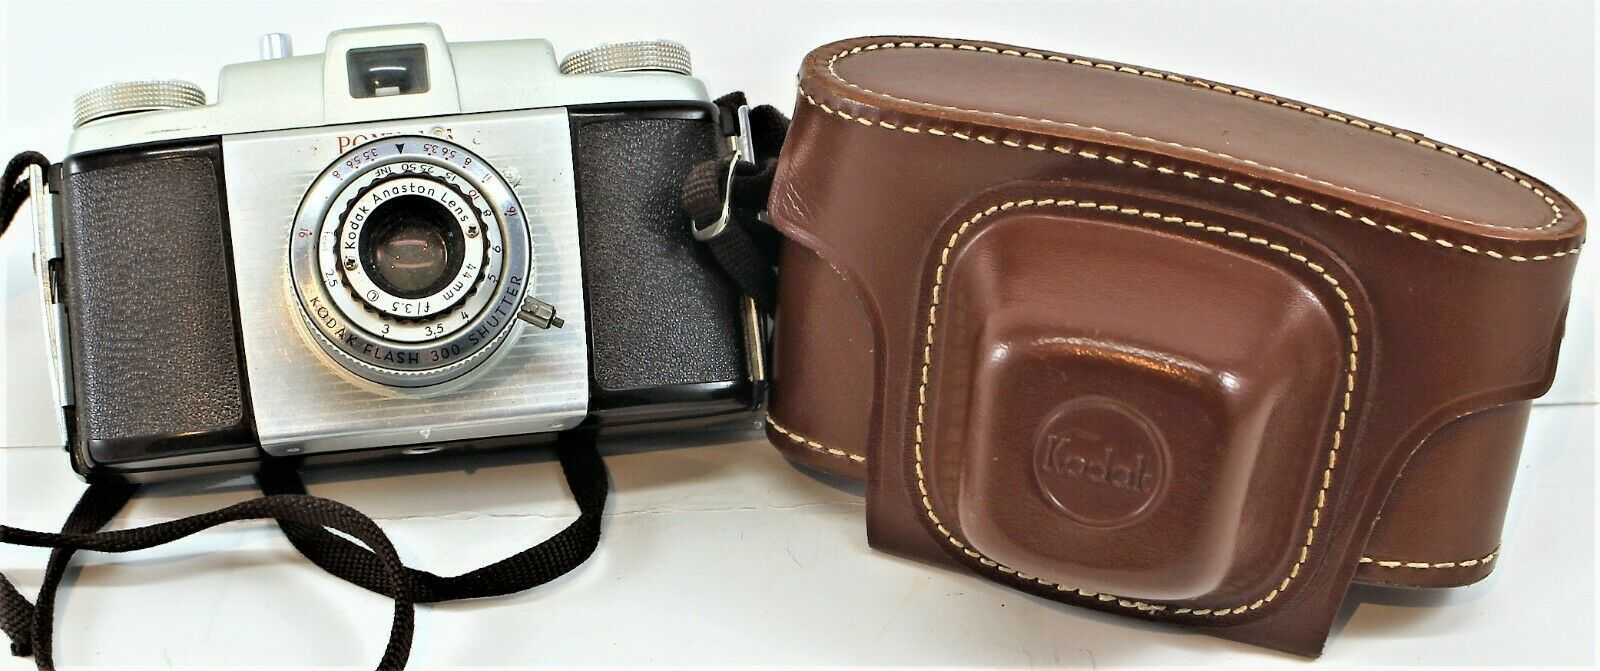 Kodak Pony 135 Camera With Kodak Leather Field Case Untested Free Shipping